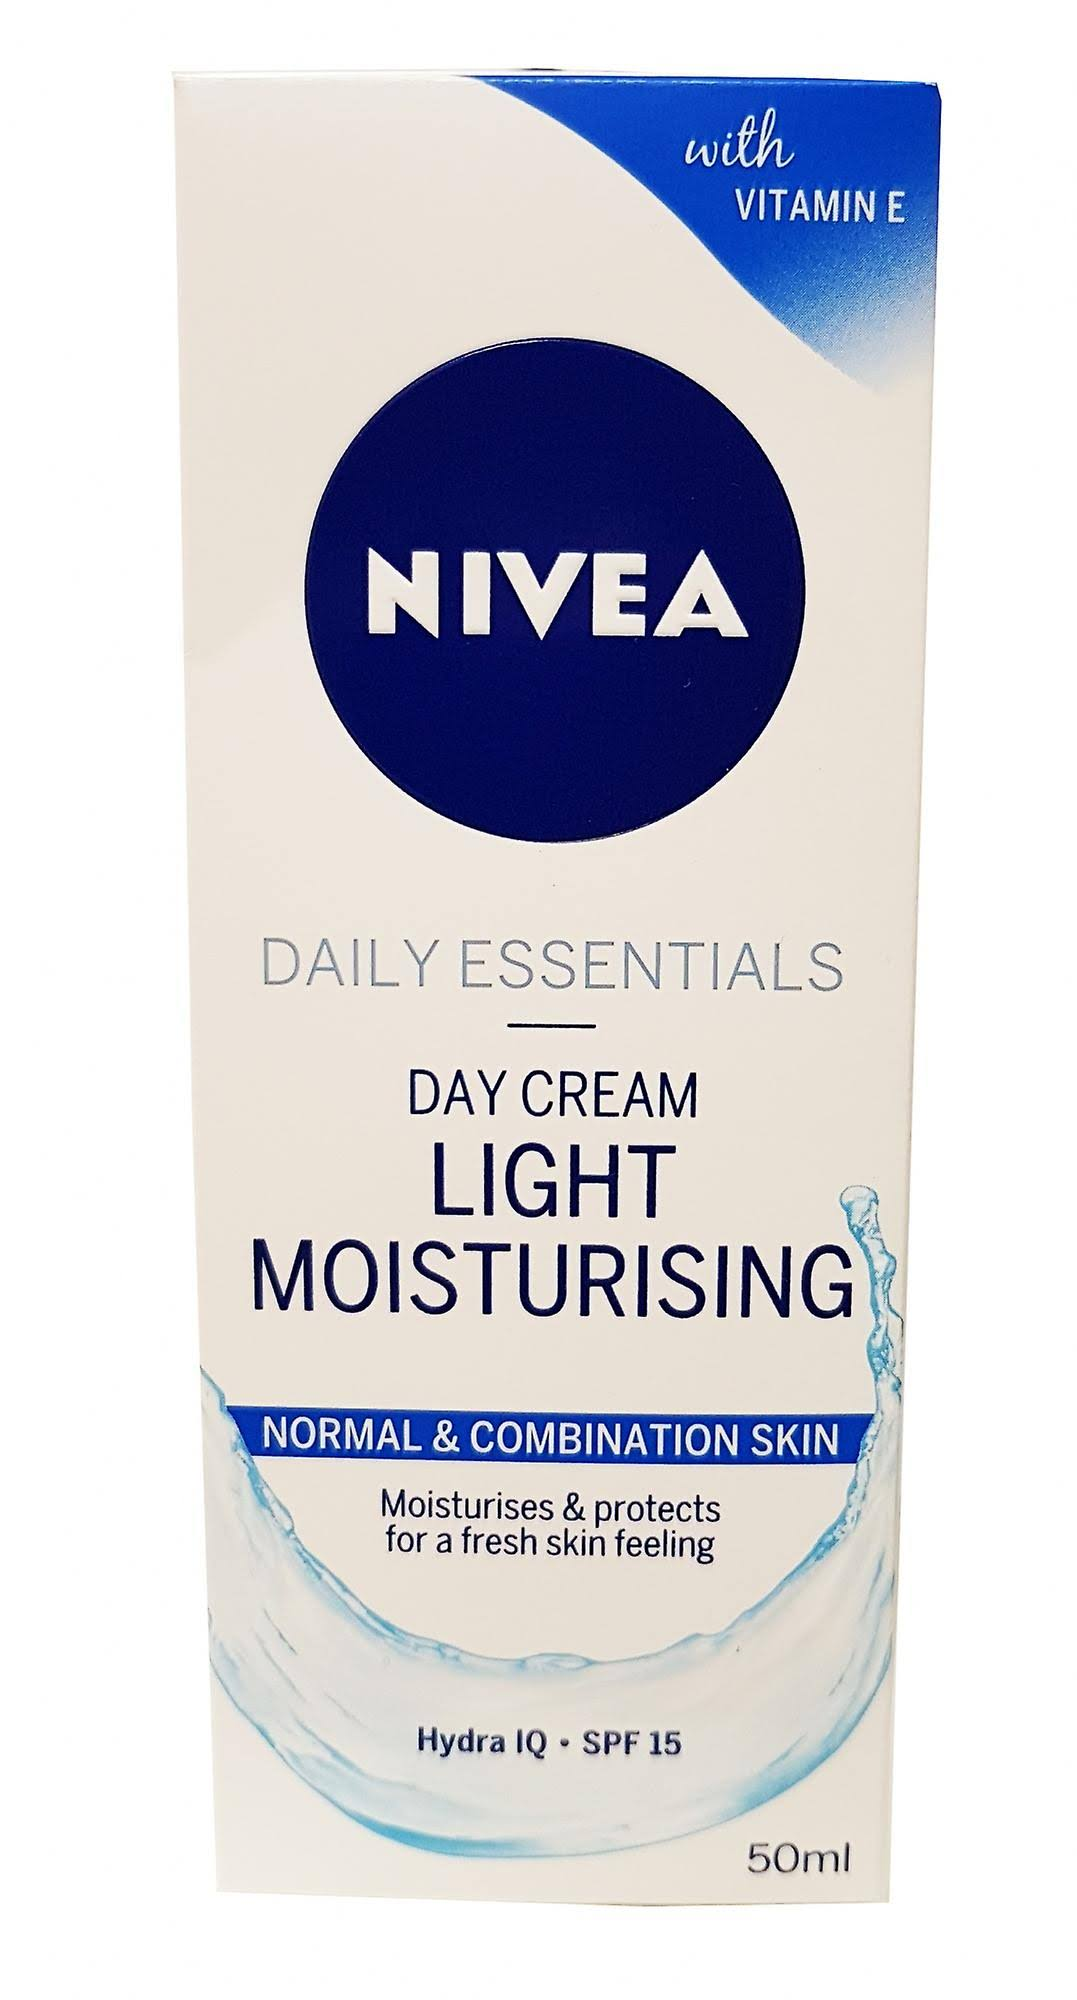 Nivea Daily Essentials Light Moisturising Day Cream - 50ml